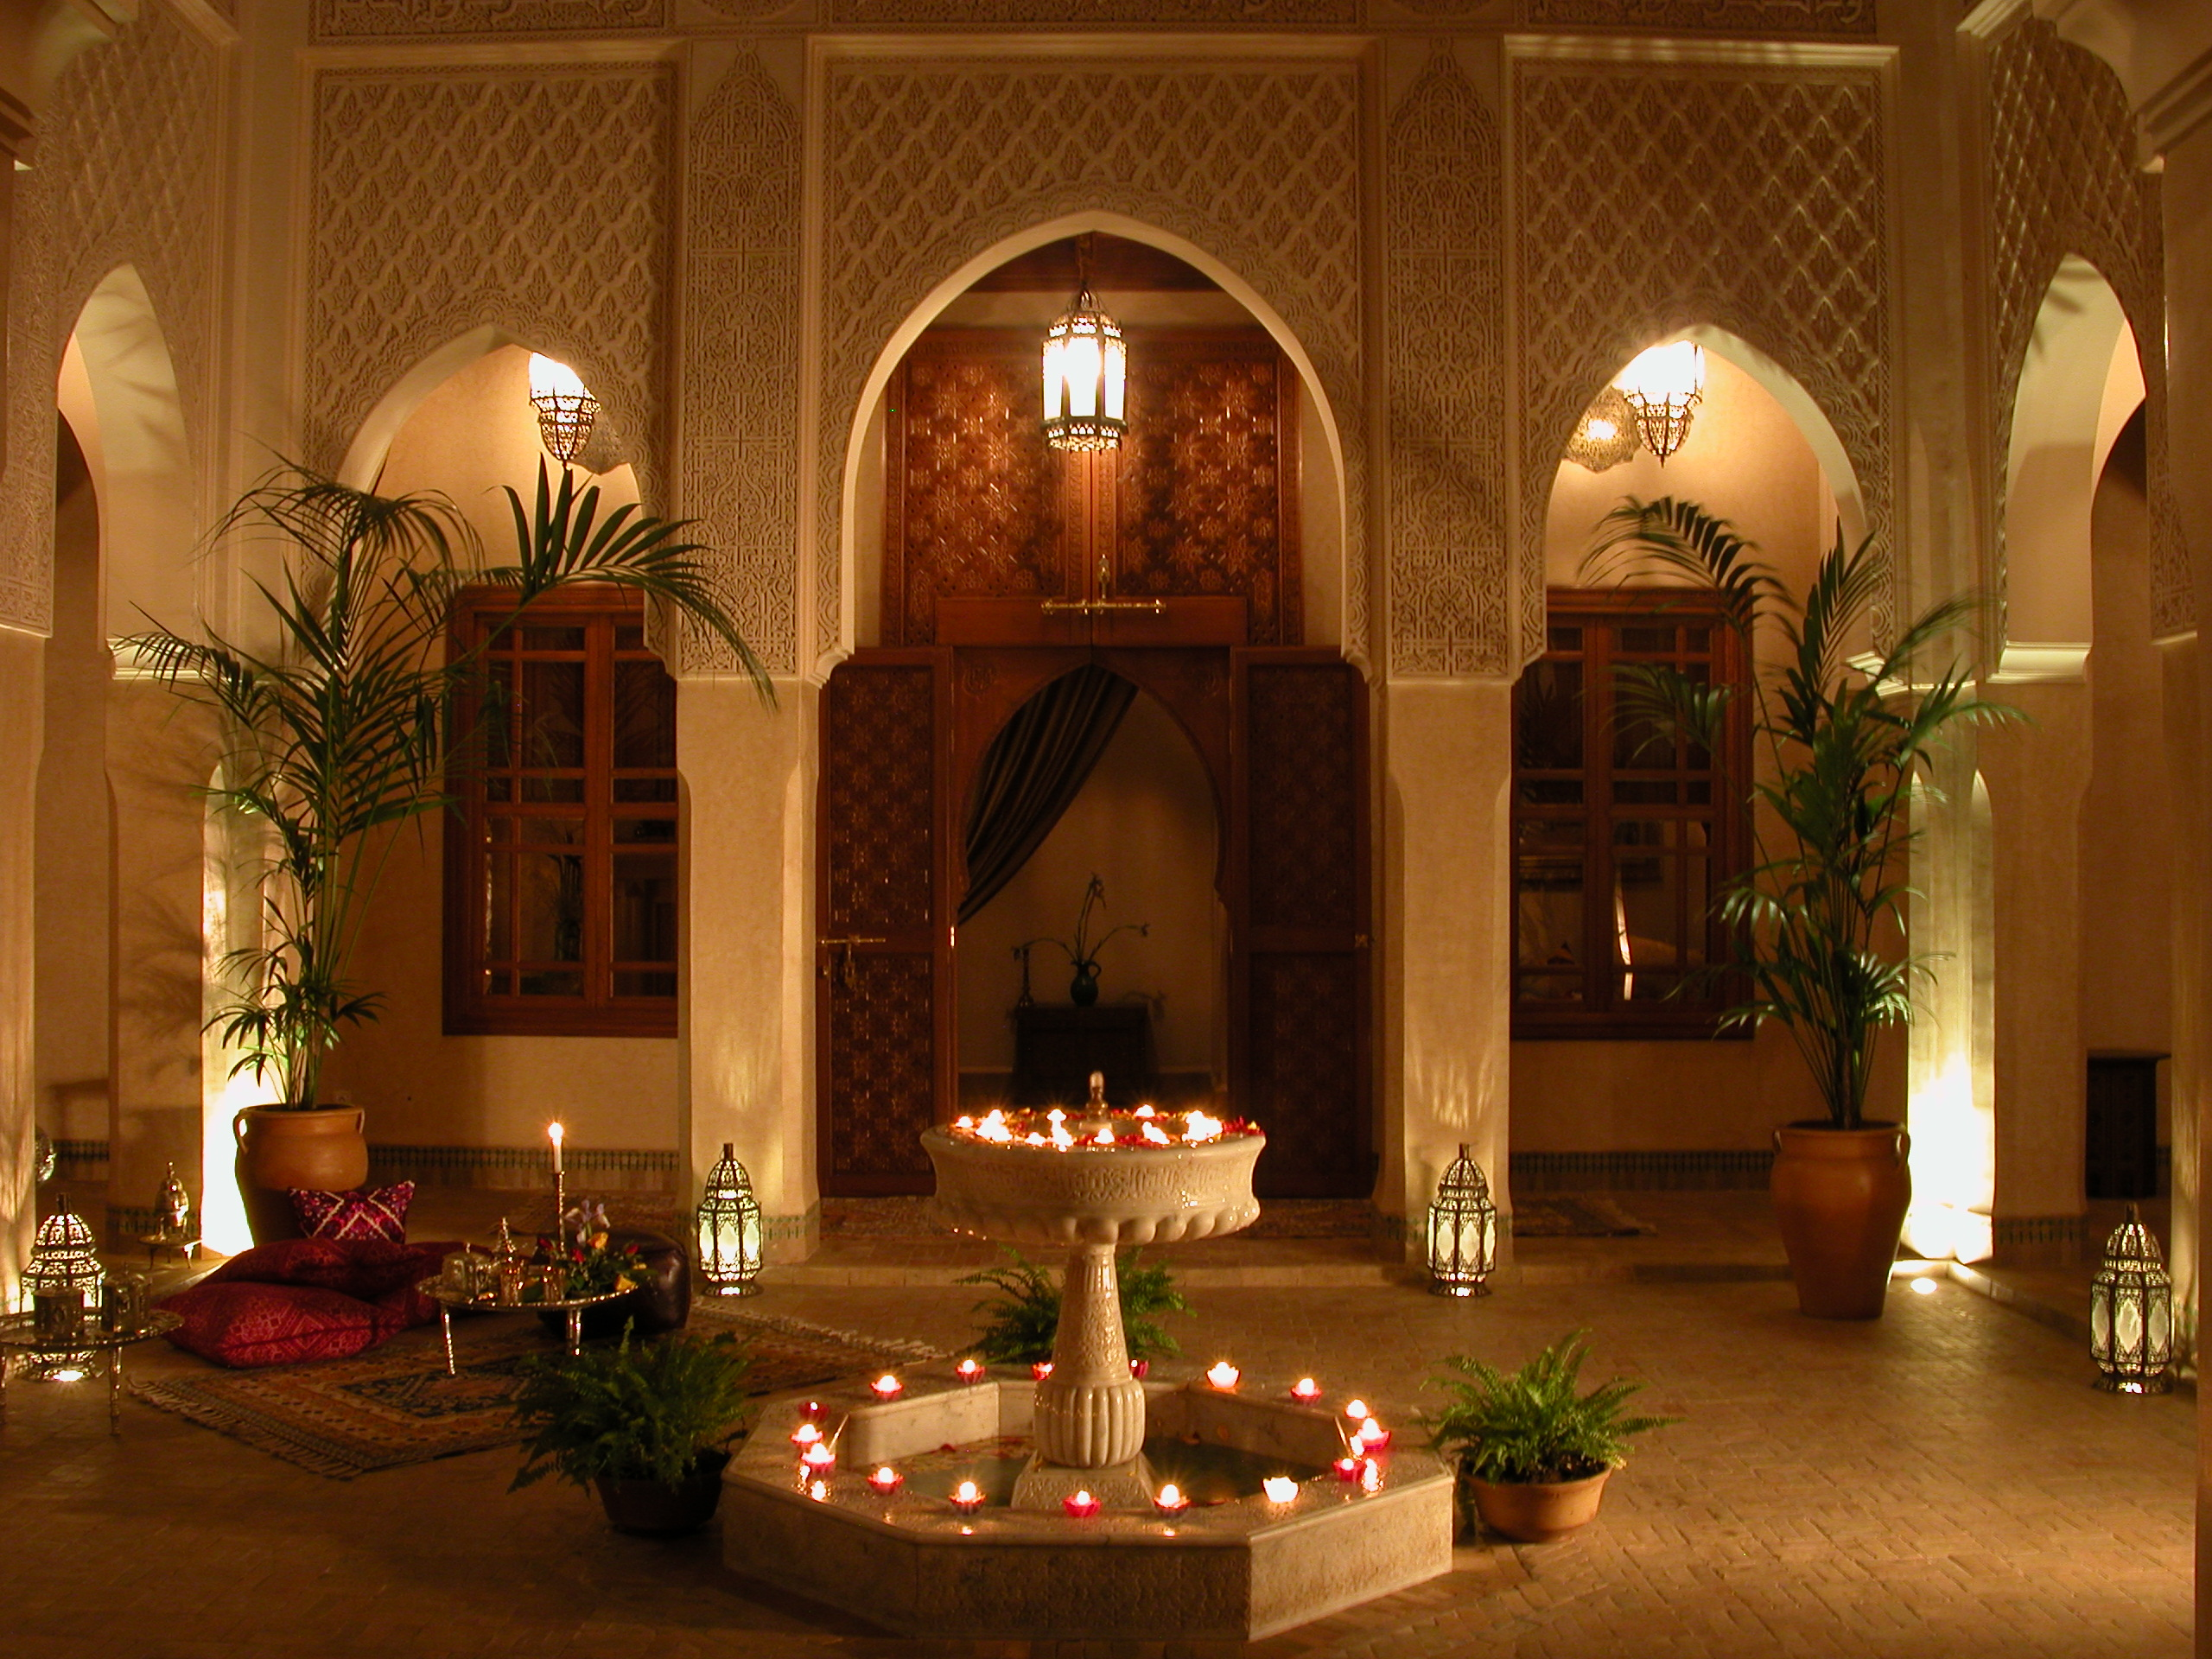 luxury riads in morocco travel exploration blog travel